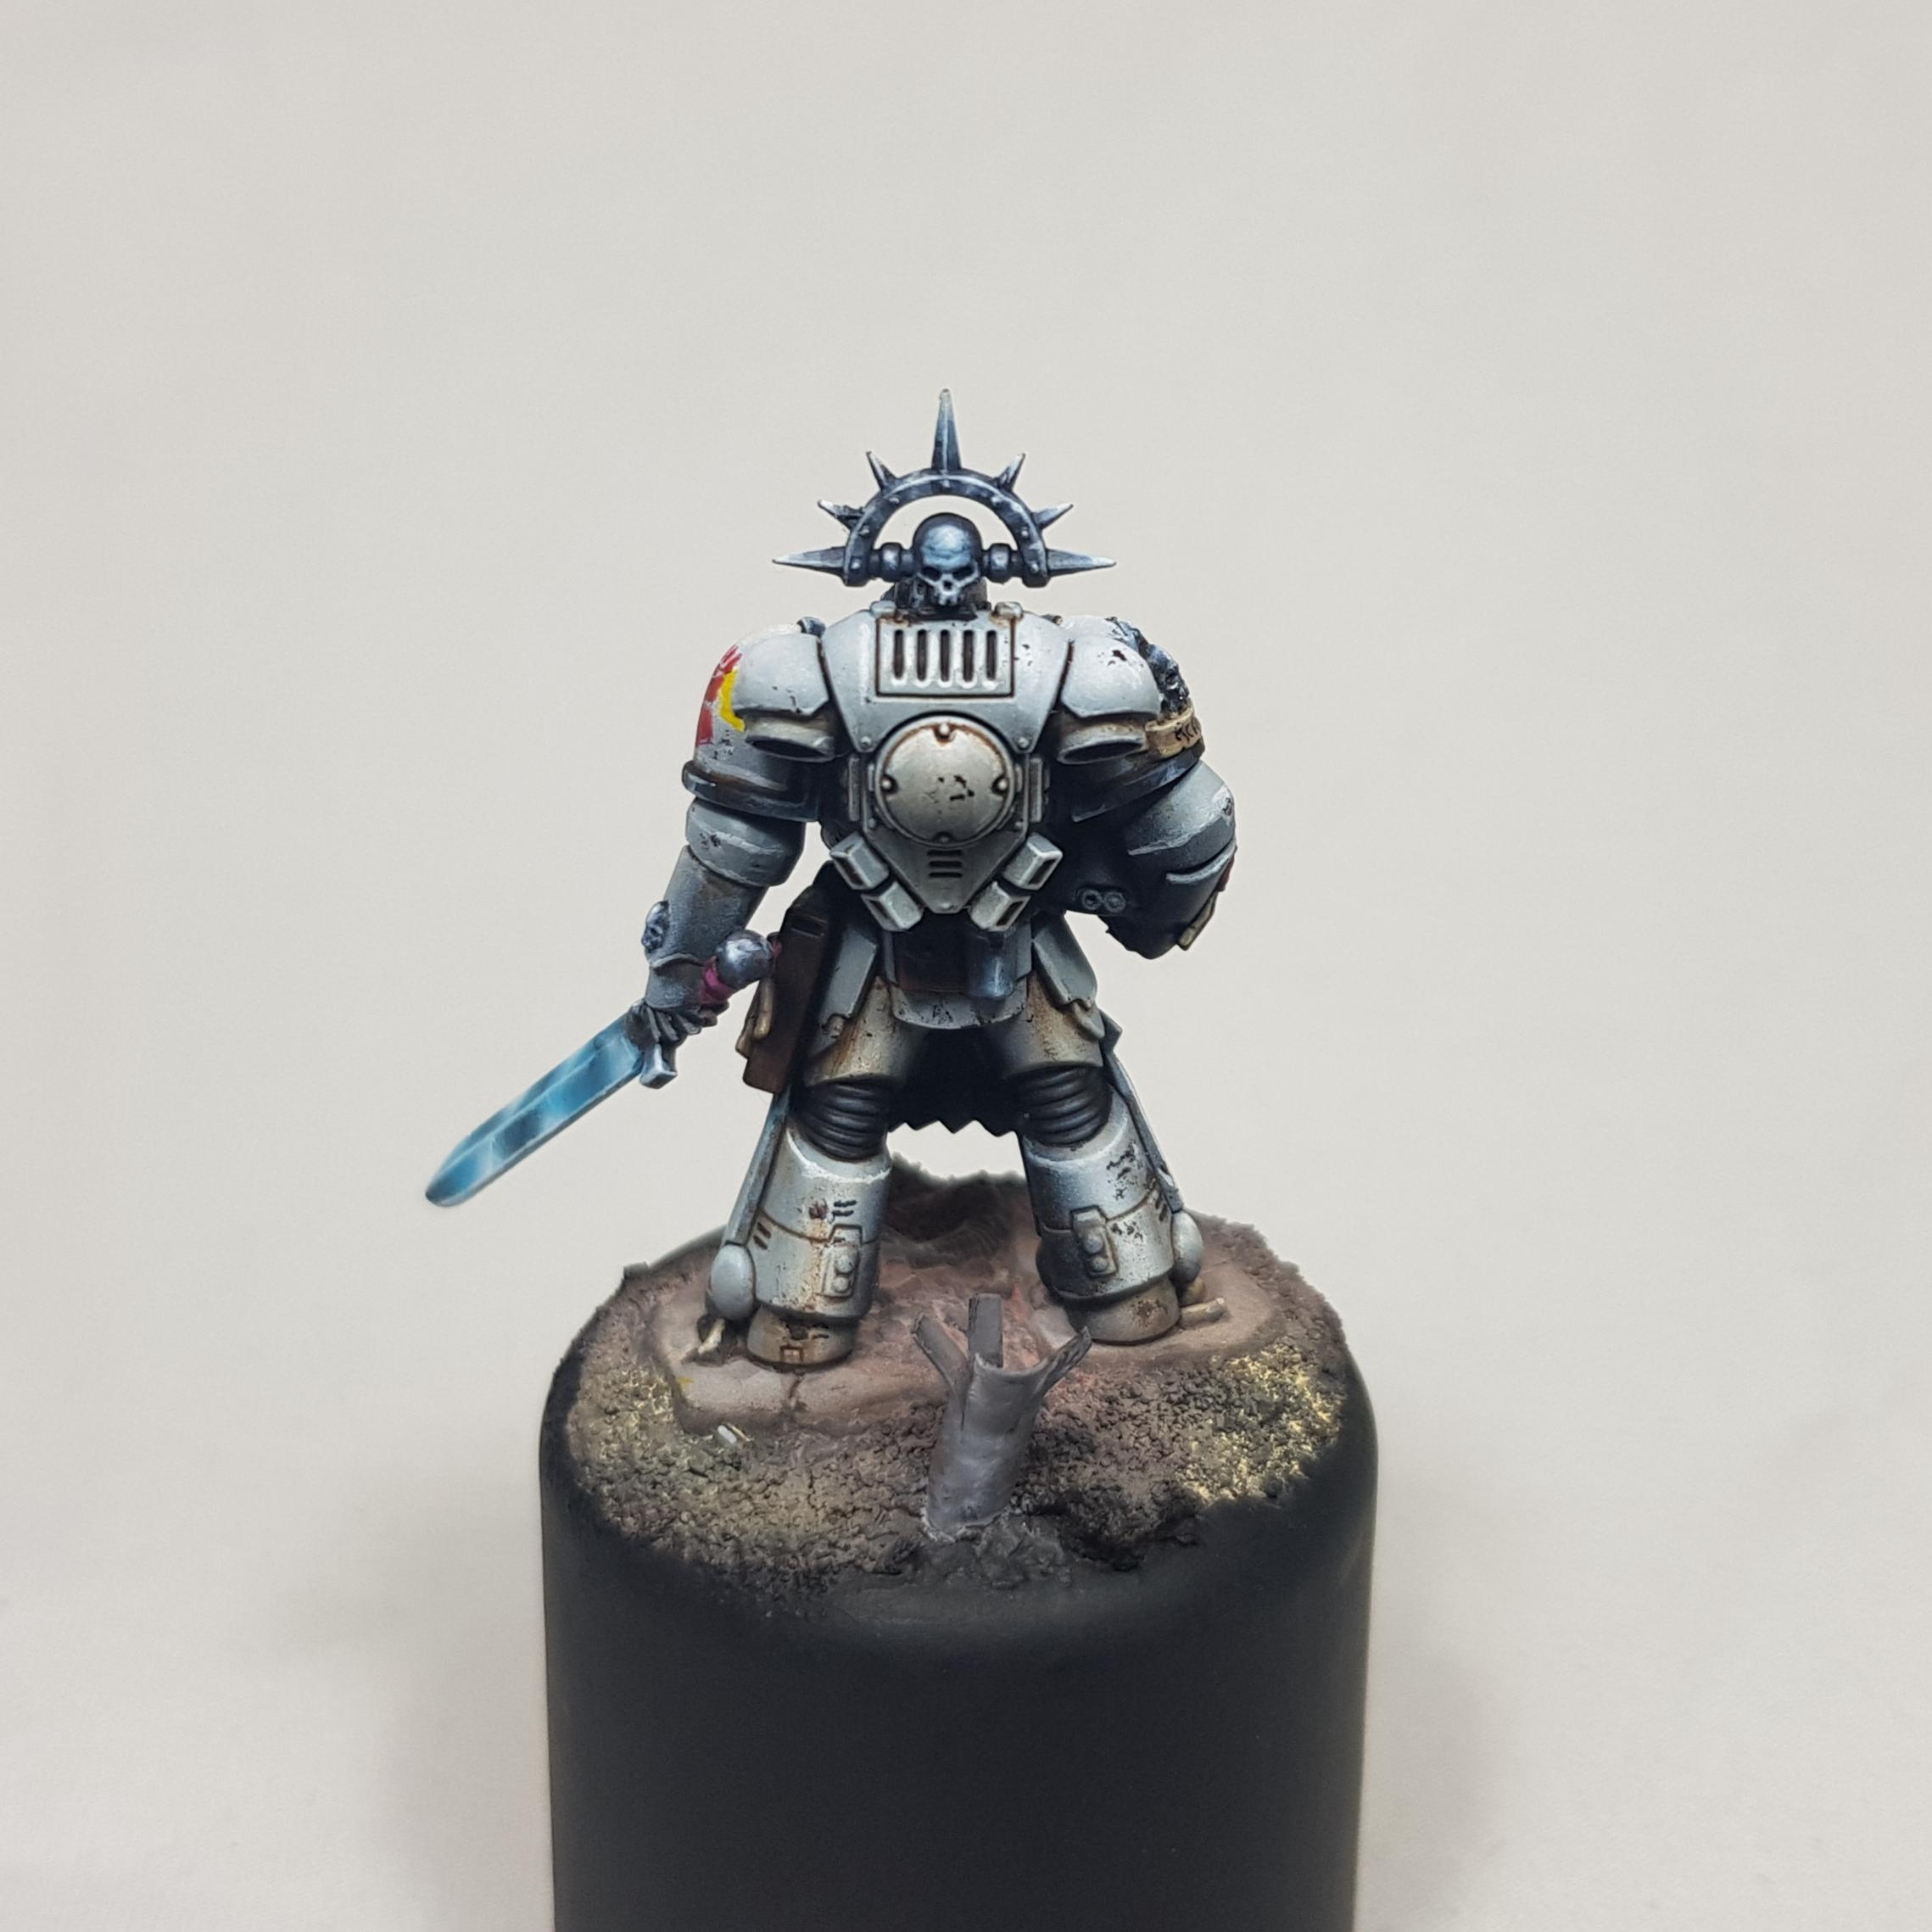 Display, Dorn, Excoriators, Freehand, Imperial Fists, Last Wall, Non-Metallic Metal, Painting Challenge, Plinth, Primaris, Space Marines